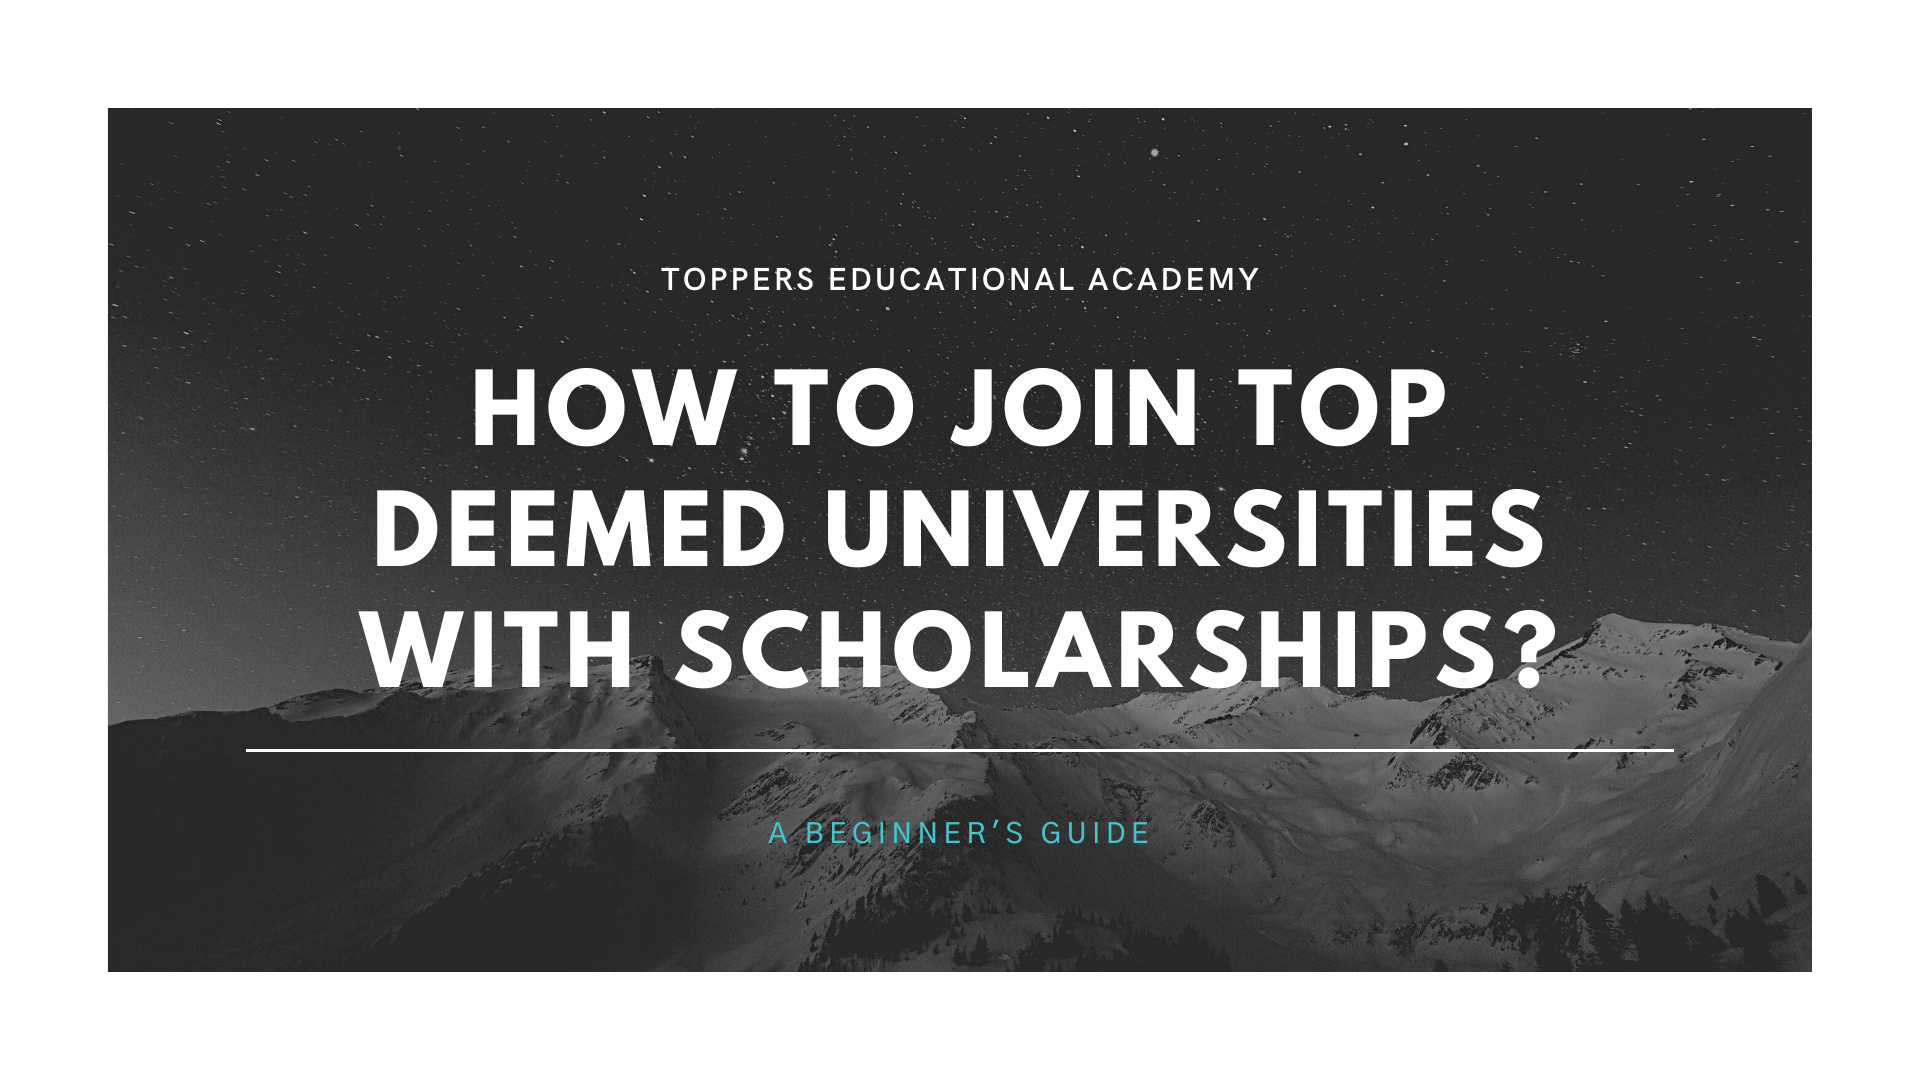 How to join top deemed universities with scholarships?